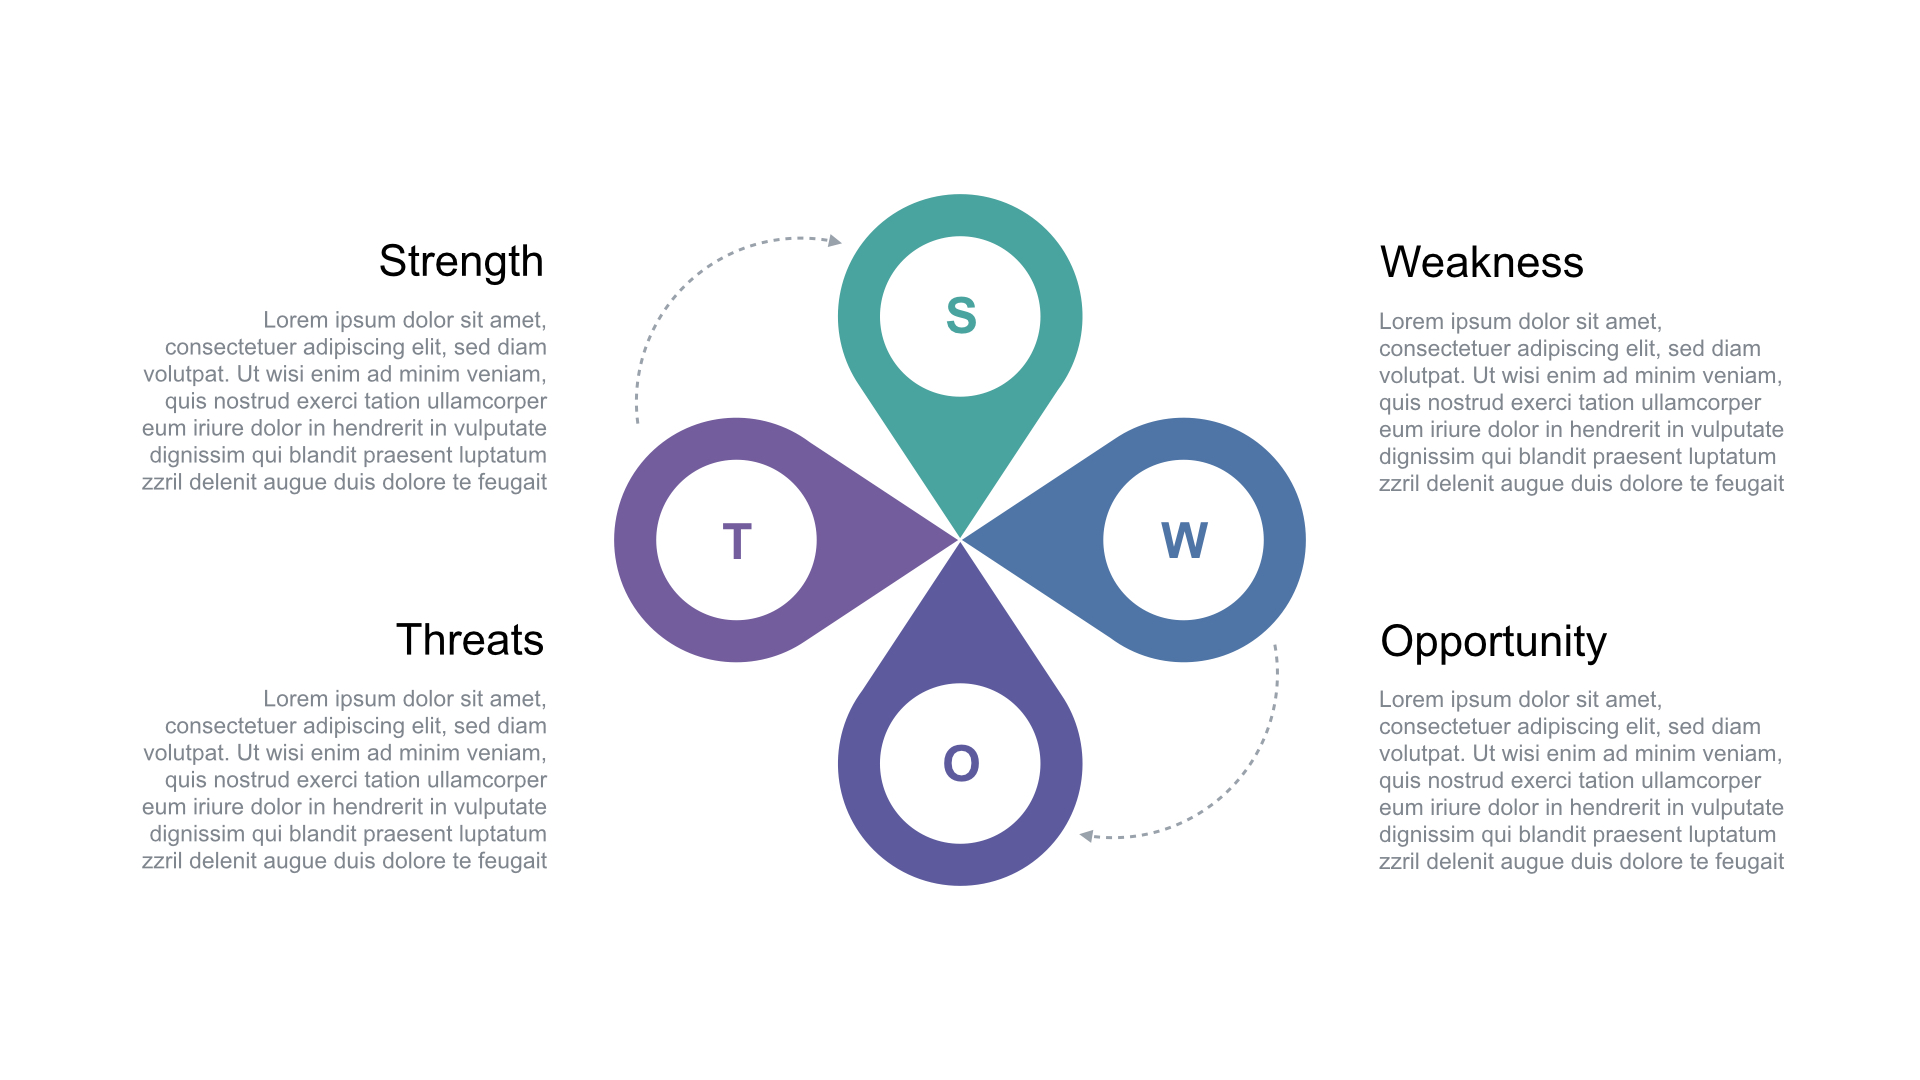 SWOT analysis ppt for CompanySWOT analysis ppt for Company